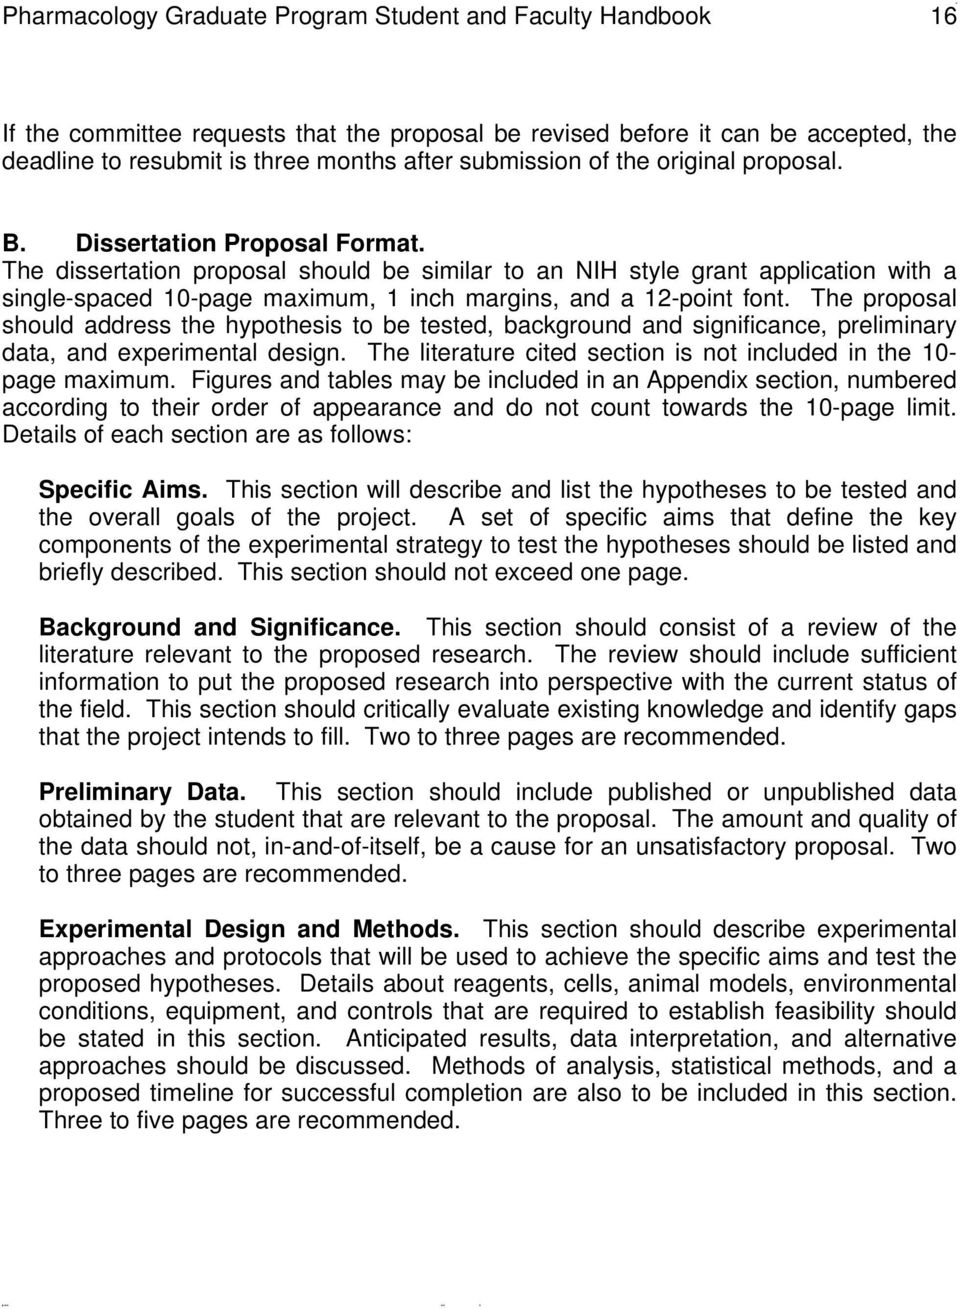 The dissertation proposal should be similar to an NIH style grant application with a single-spaced 10-page maximum, 1 inch margins, and a 12-point font.